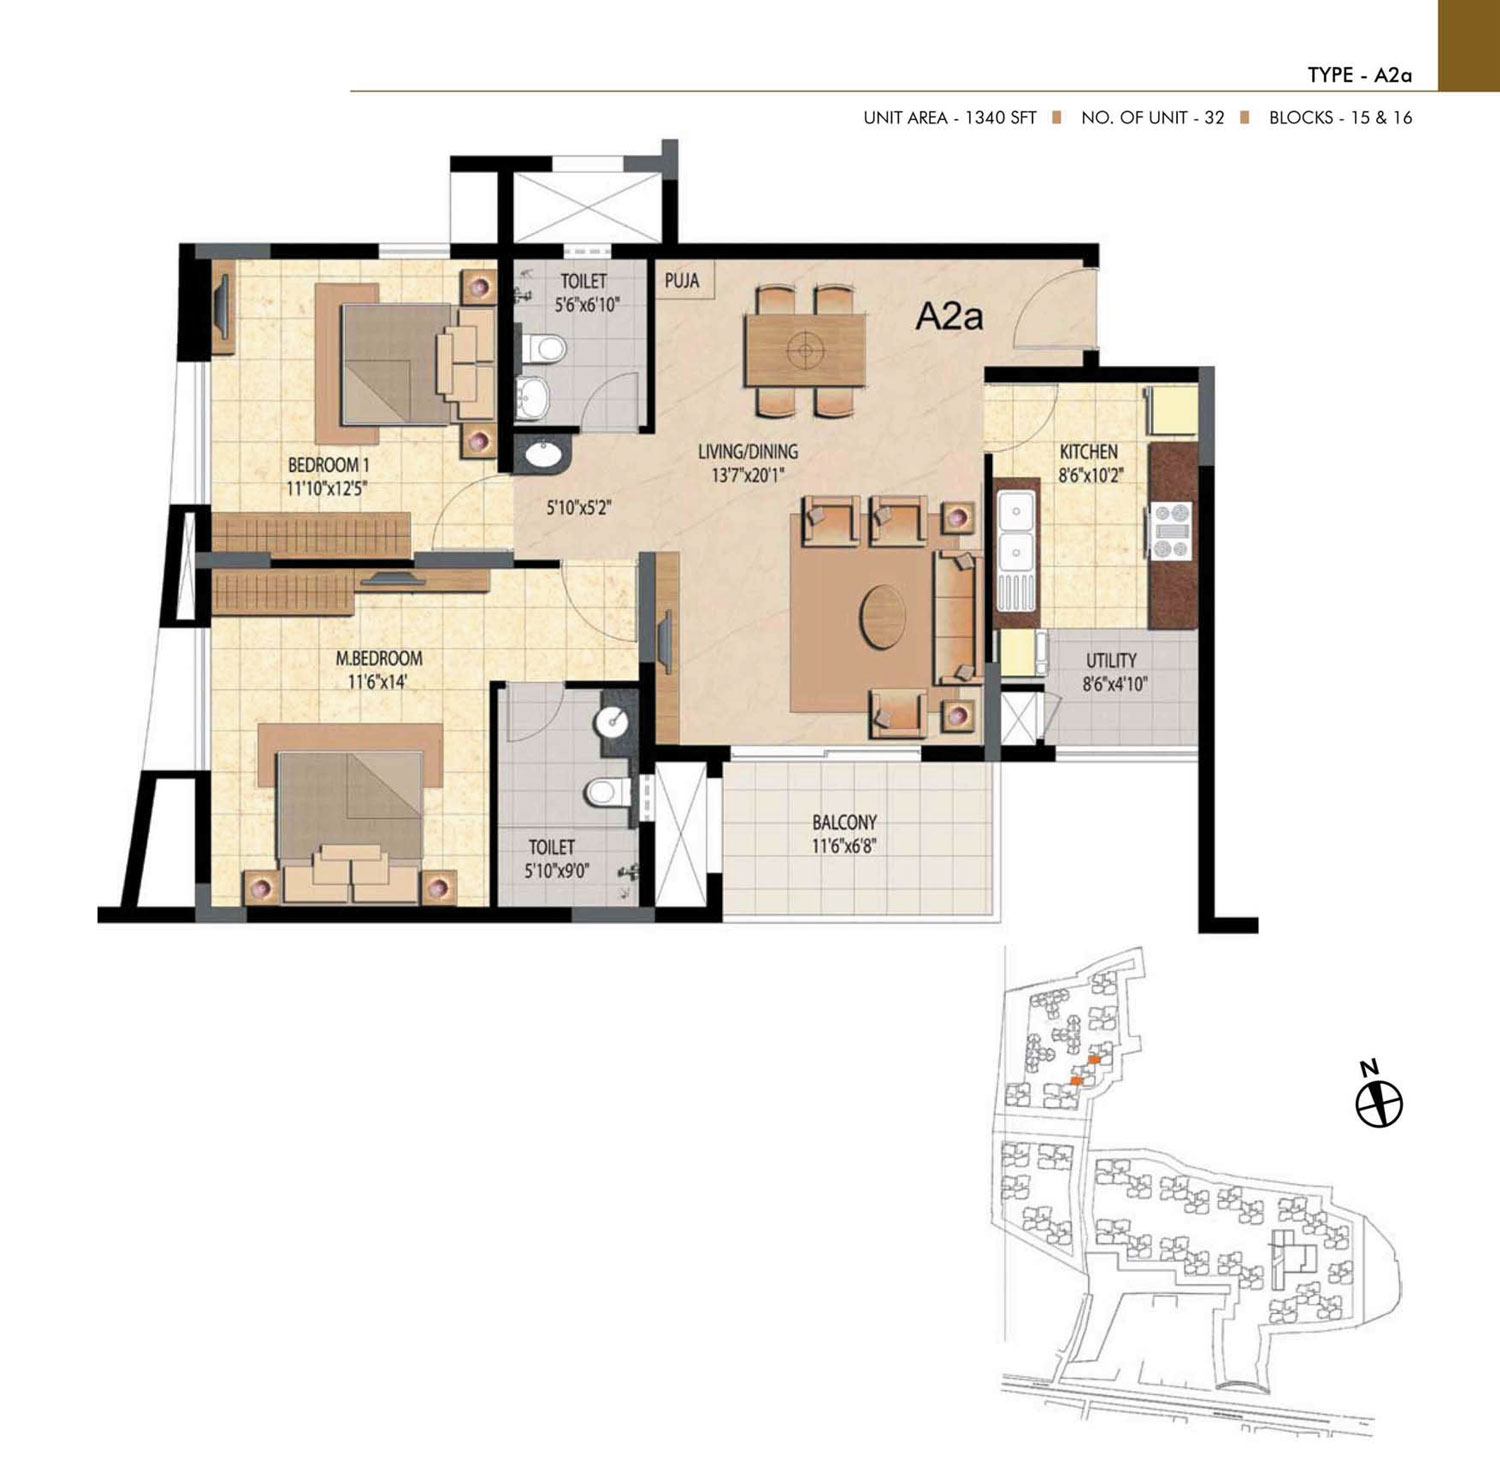 Type A2A - 2 Bed - 1340 Sq Ft